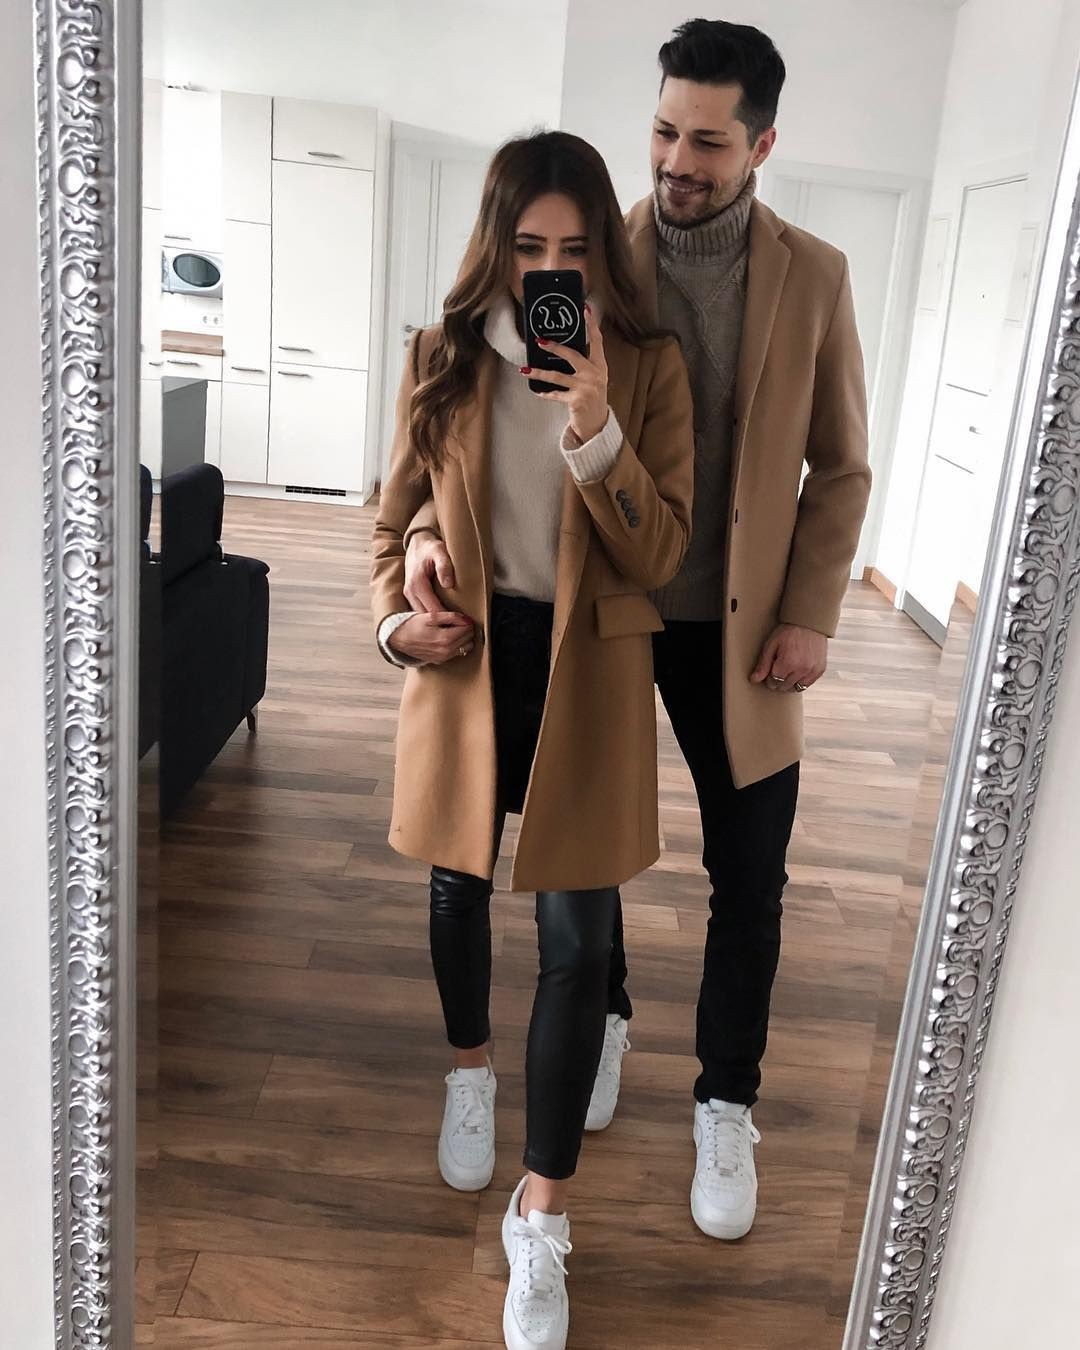 Couple outfit match coat, fashion accessory, leather jacket, couple costume, trench coat